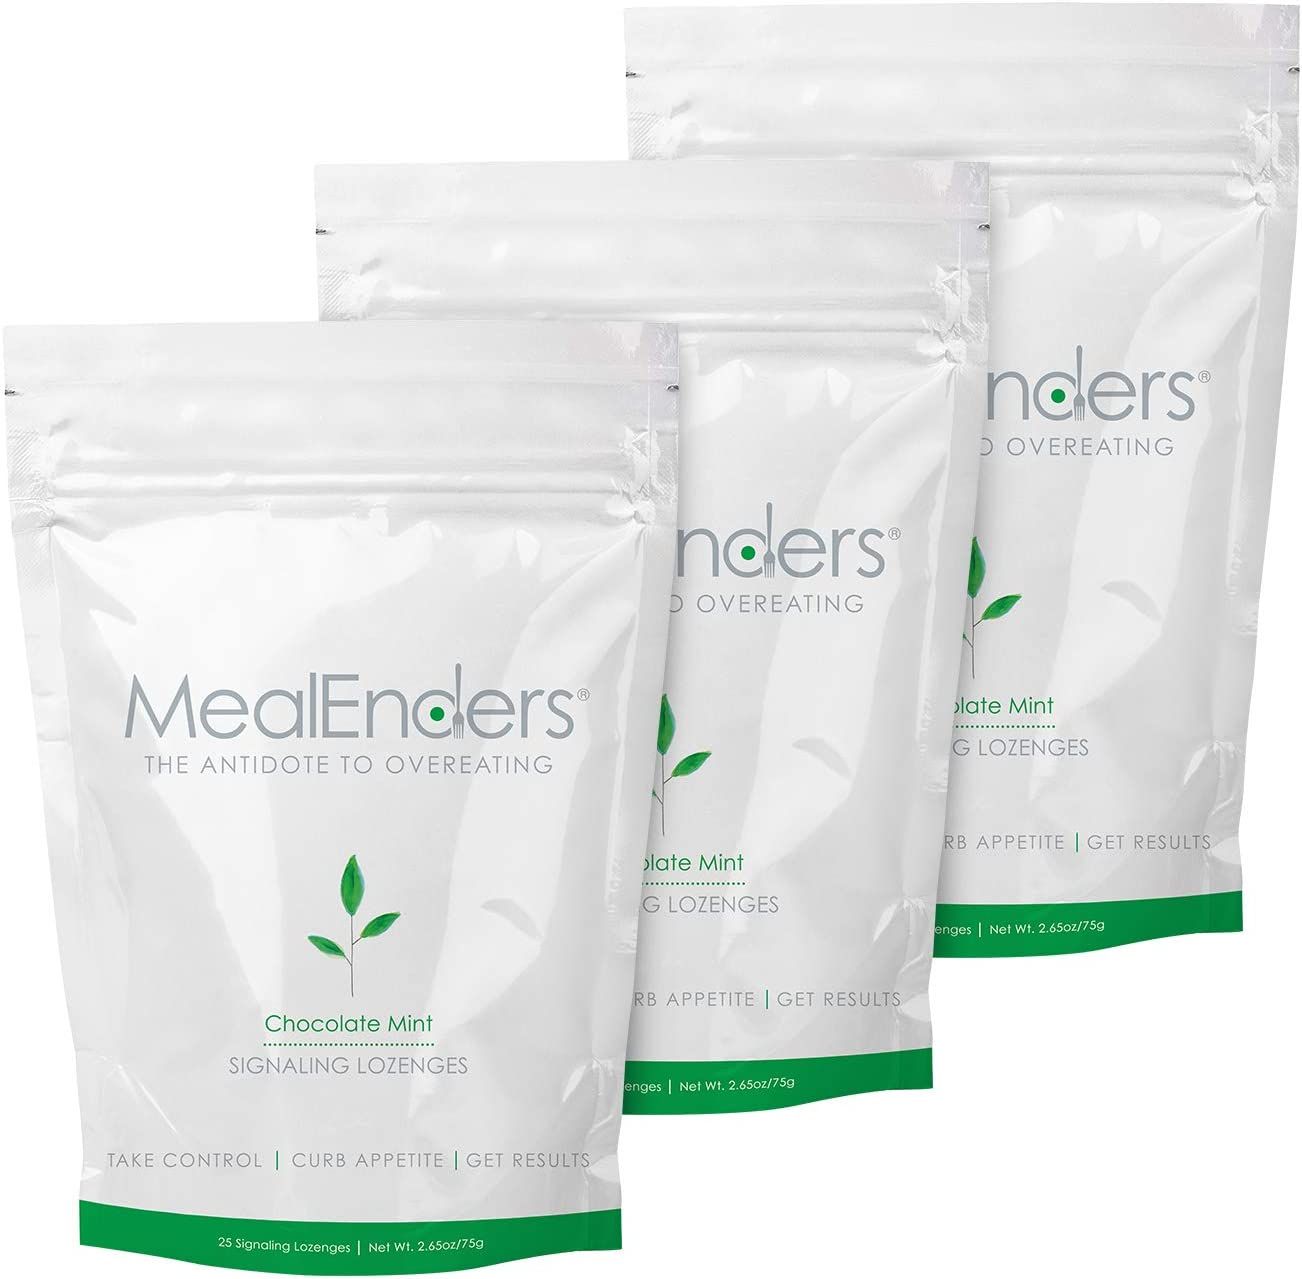 MealEnders Cravings Control sale Lozenges Overeating Cra Curb Max 44% OFF Stop